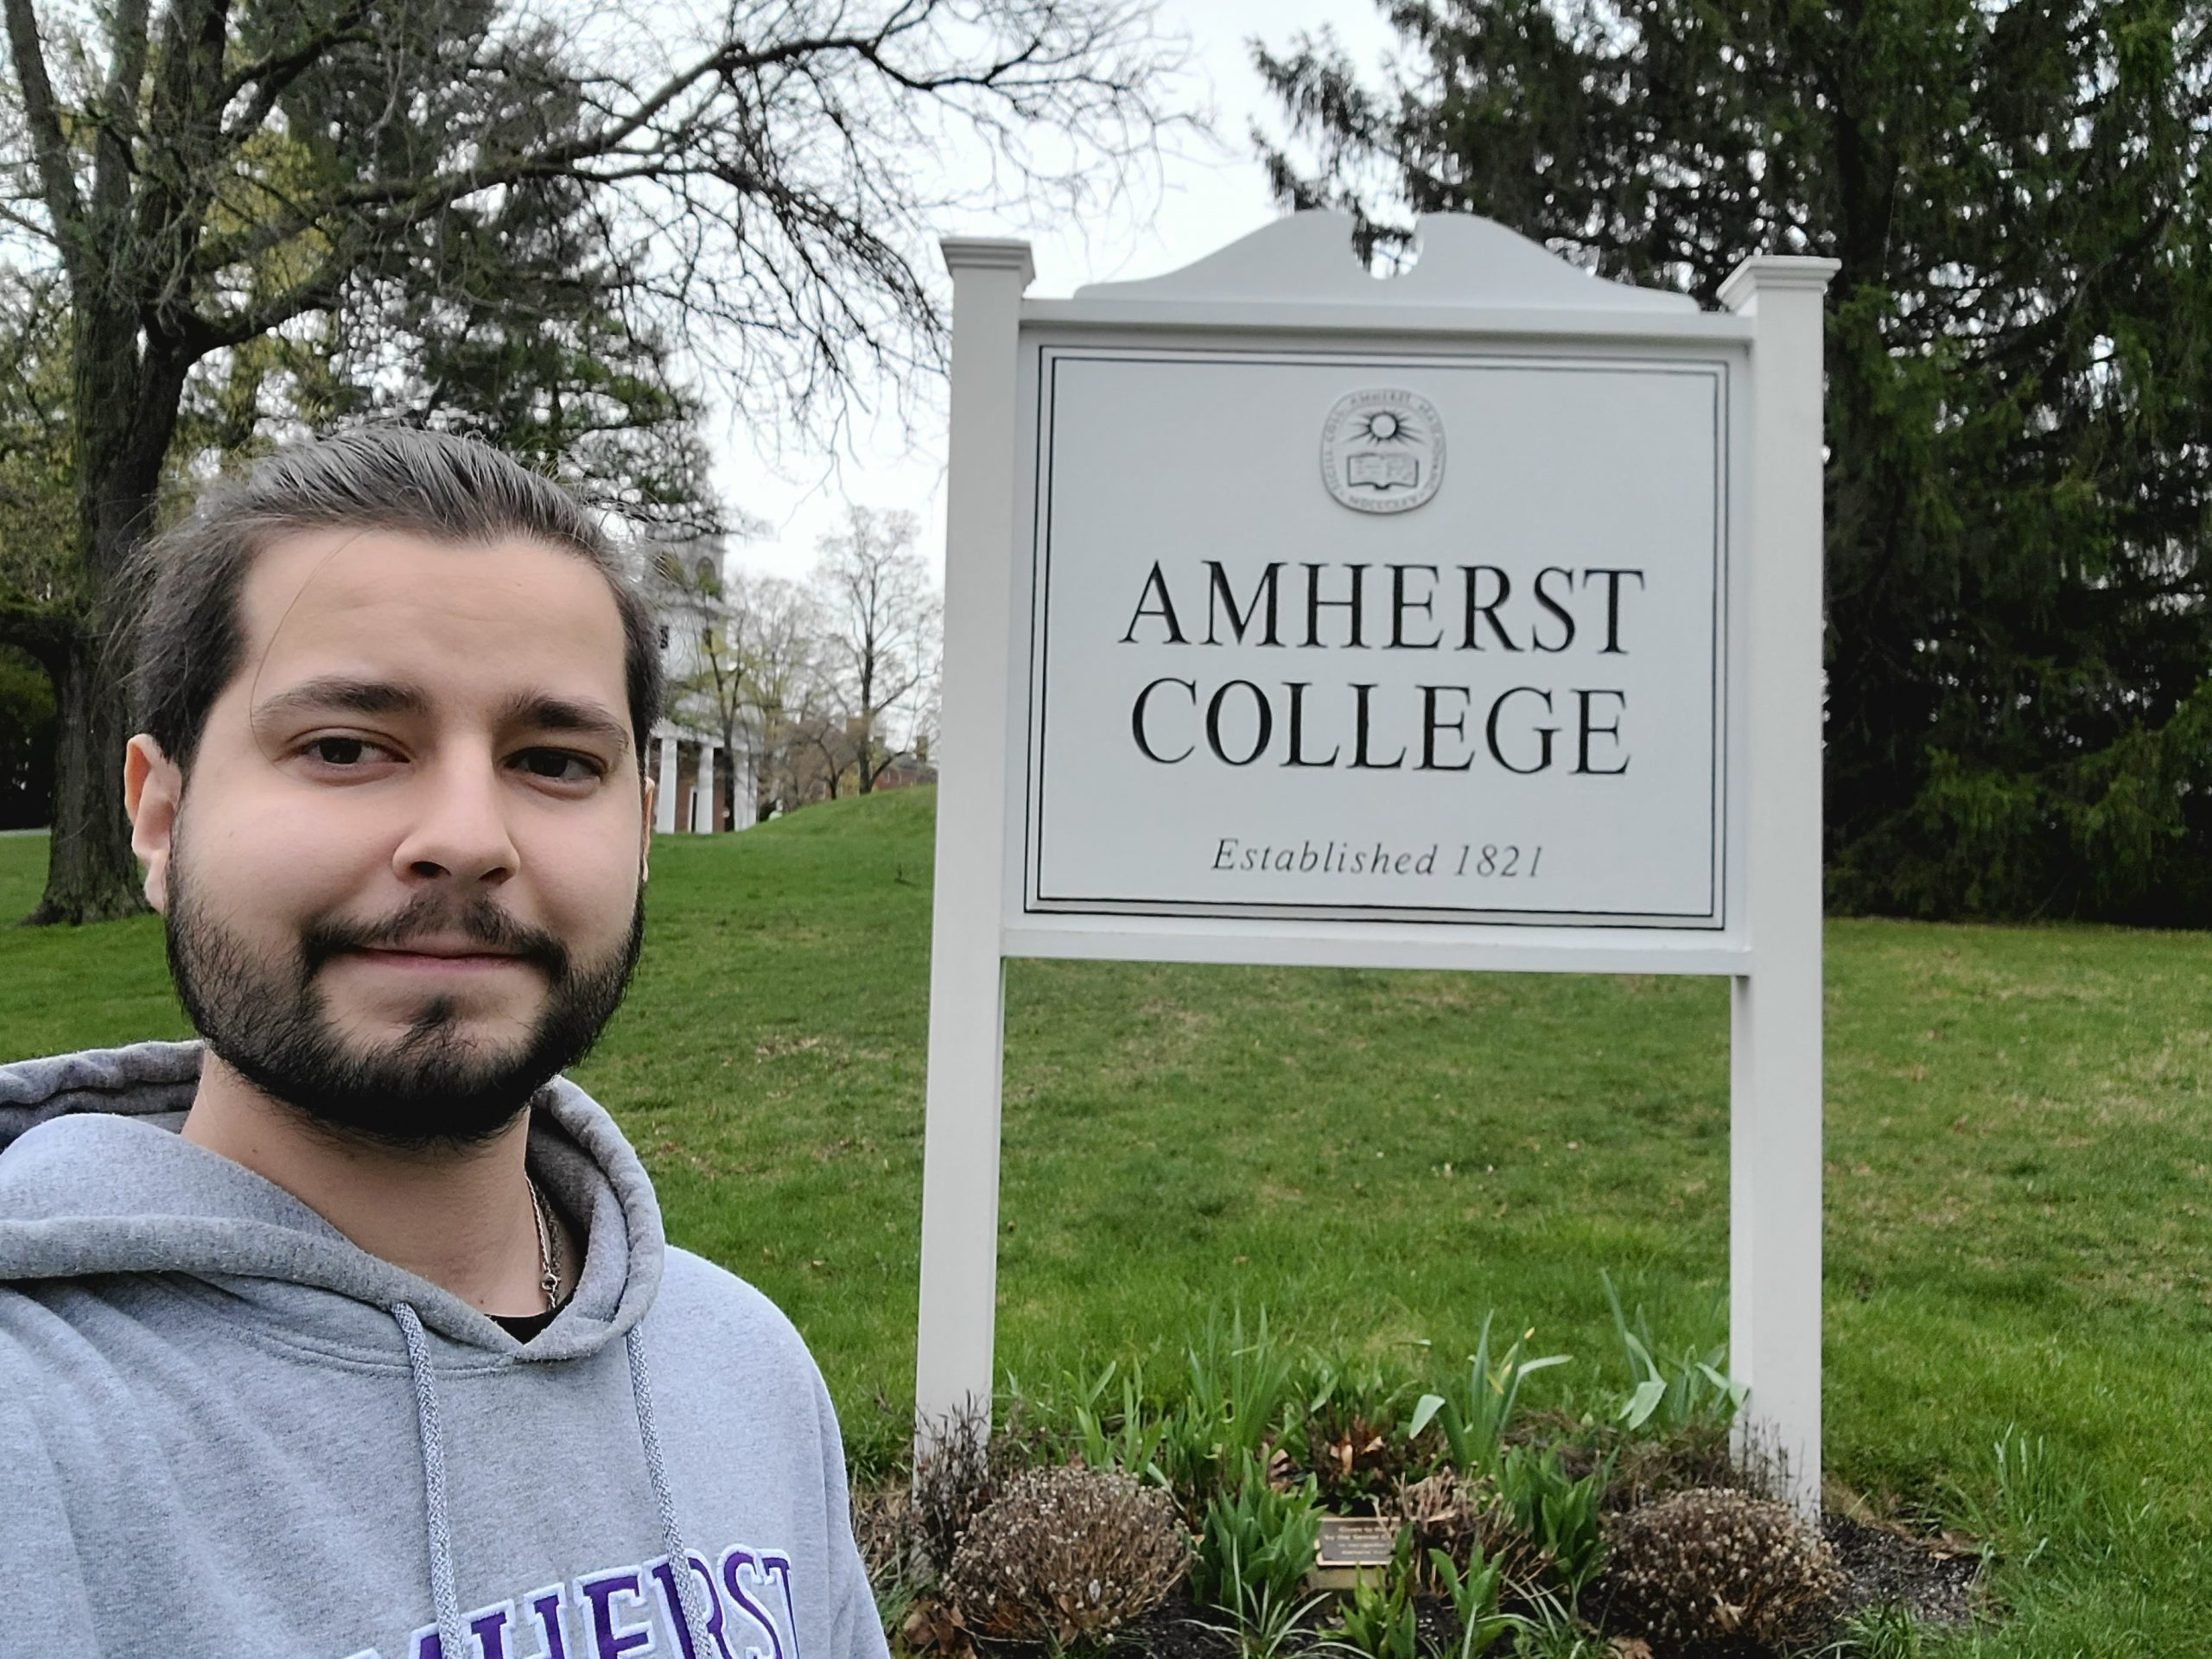 FLTA Braulio Paz, Teaching Assistant At Amherst College, Shares His Experience